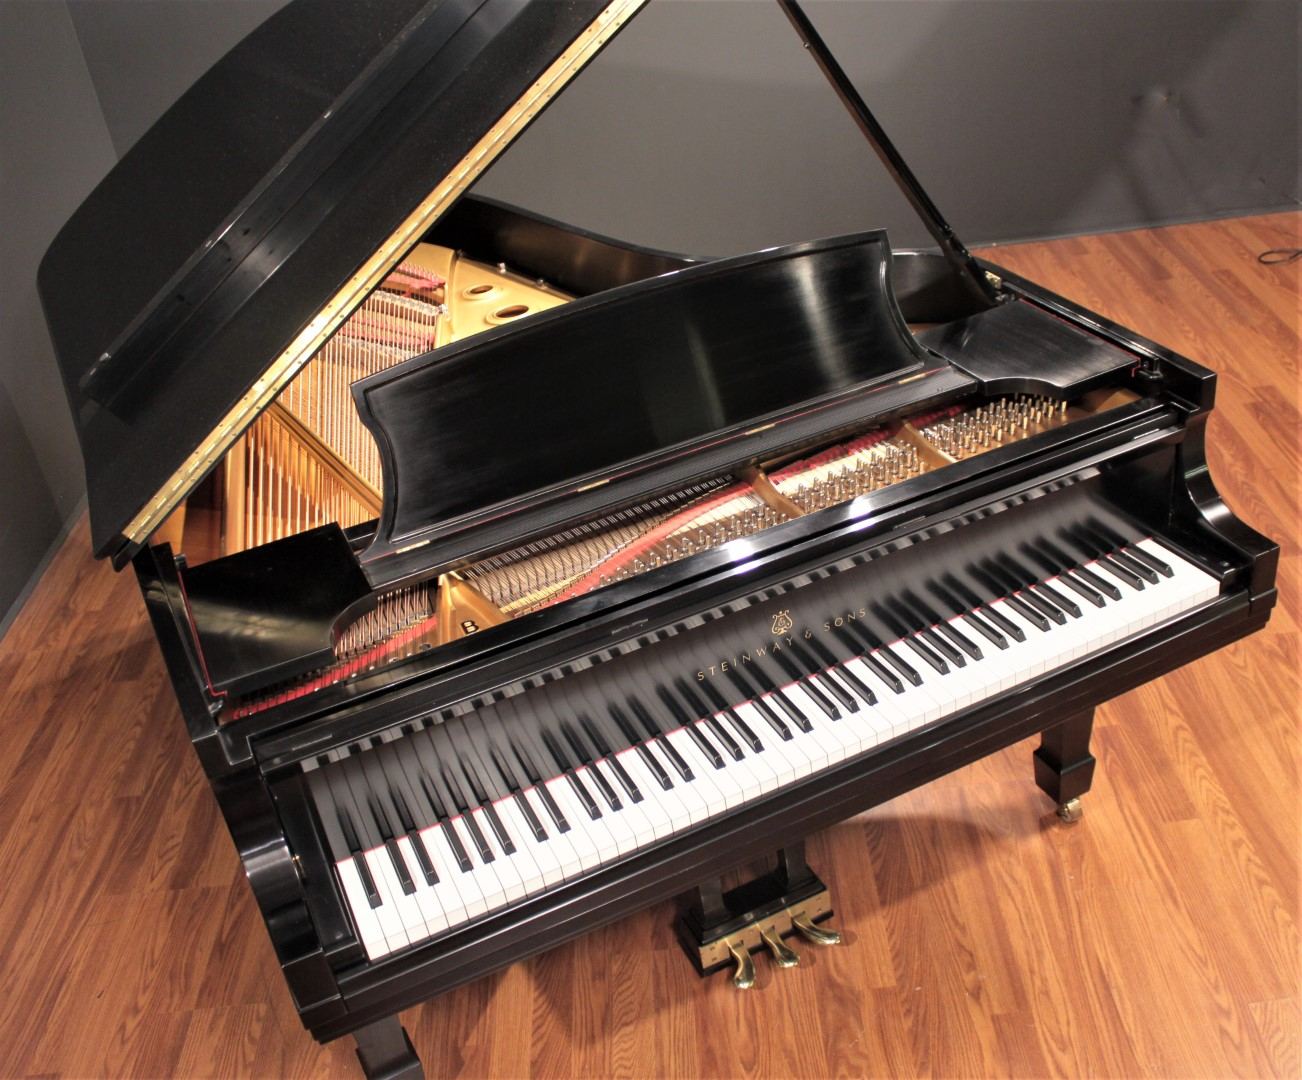 Steinway model b 7 39 semi concert grand piano 1991 grand for Yamaha c2 piano for sale